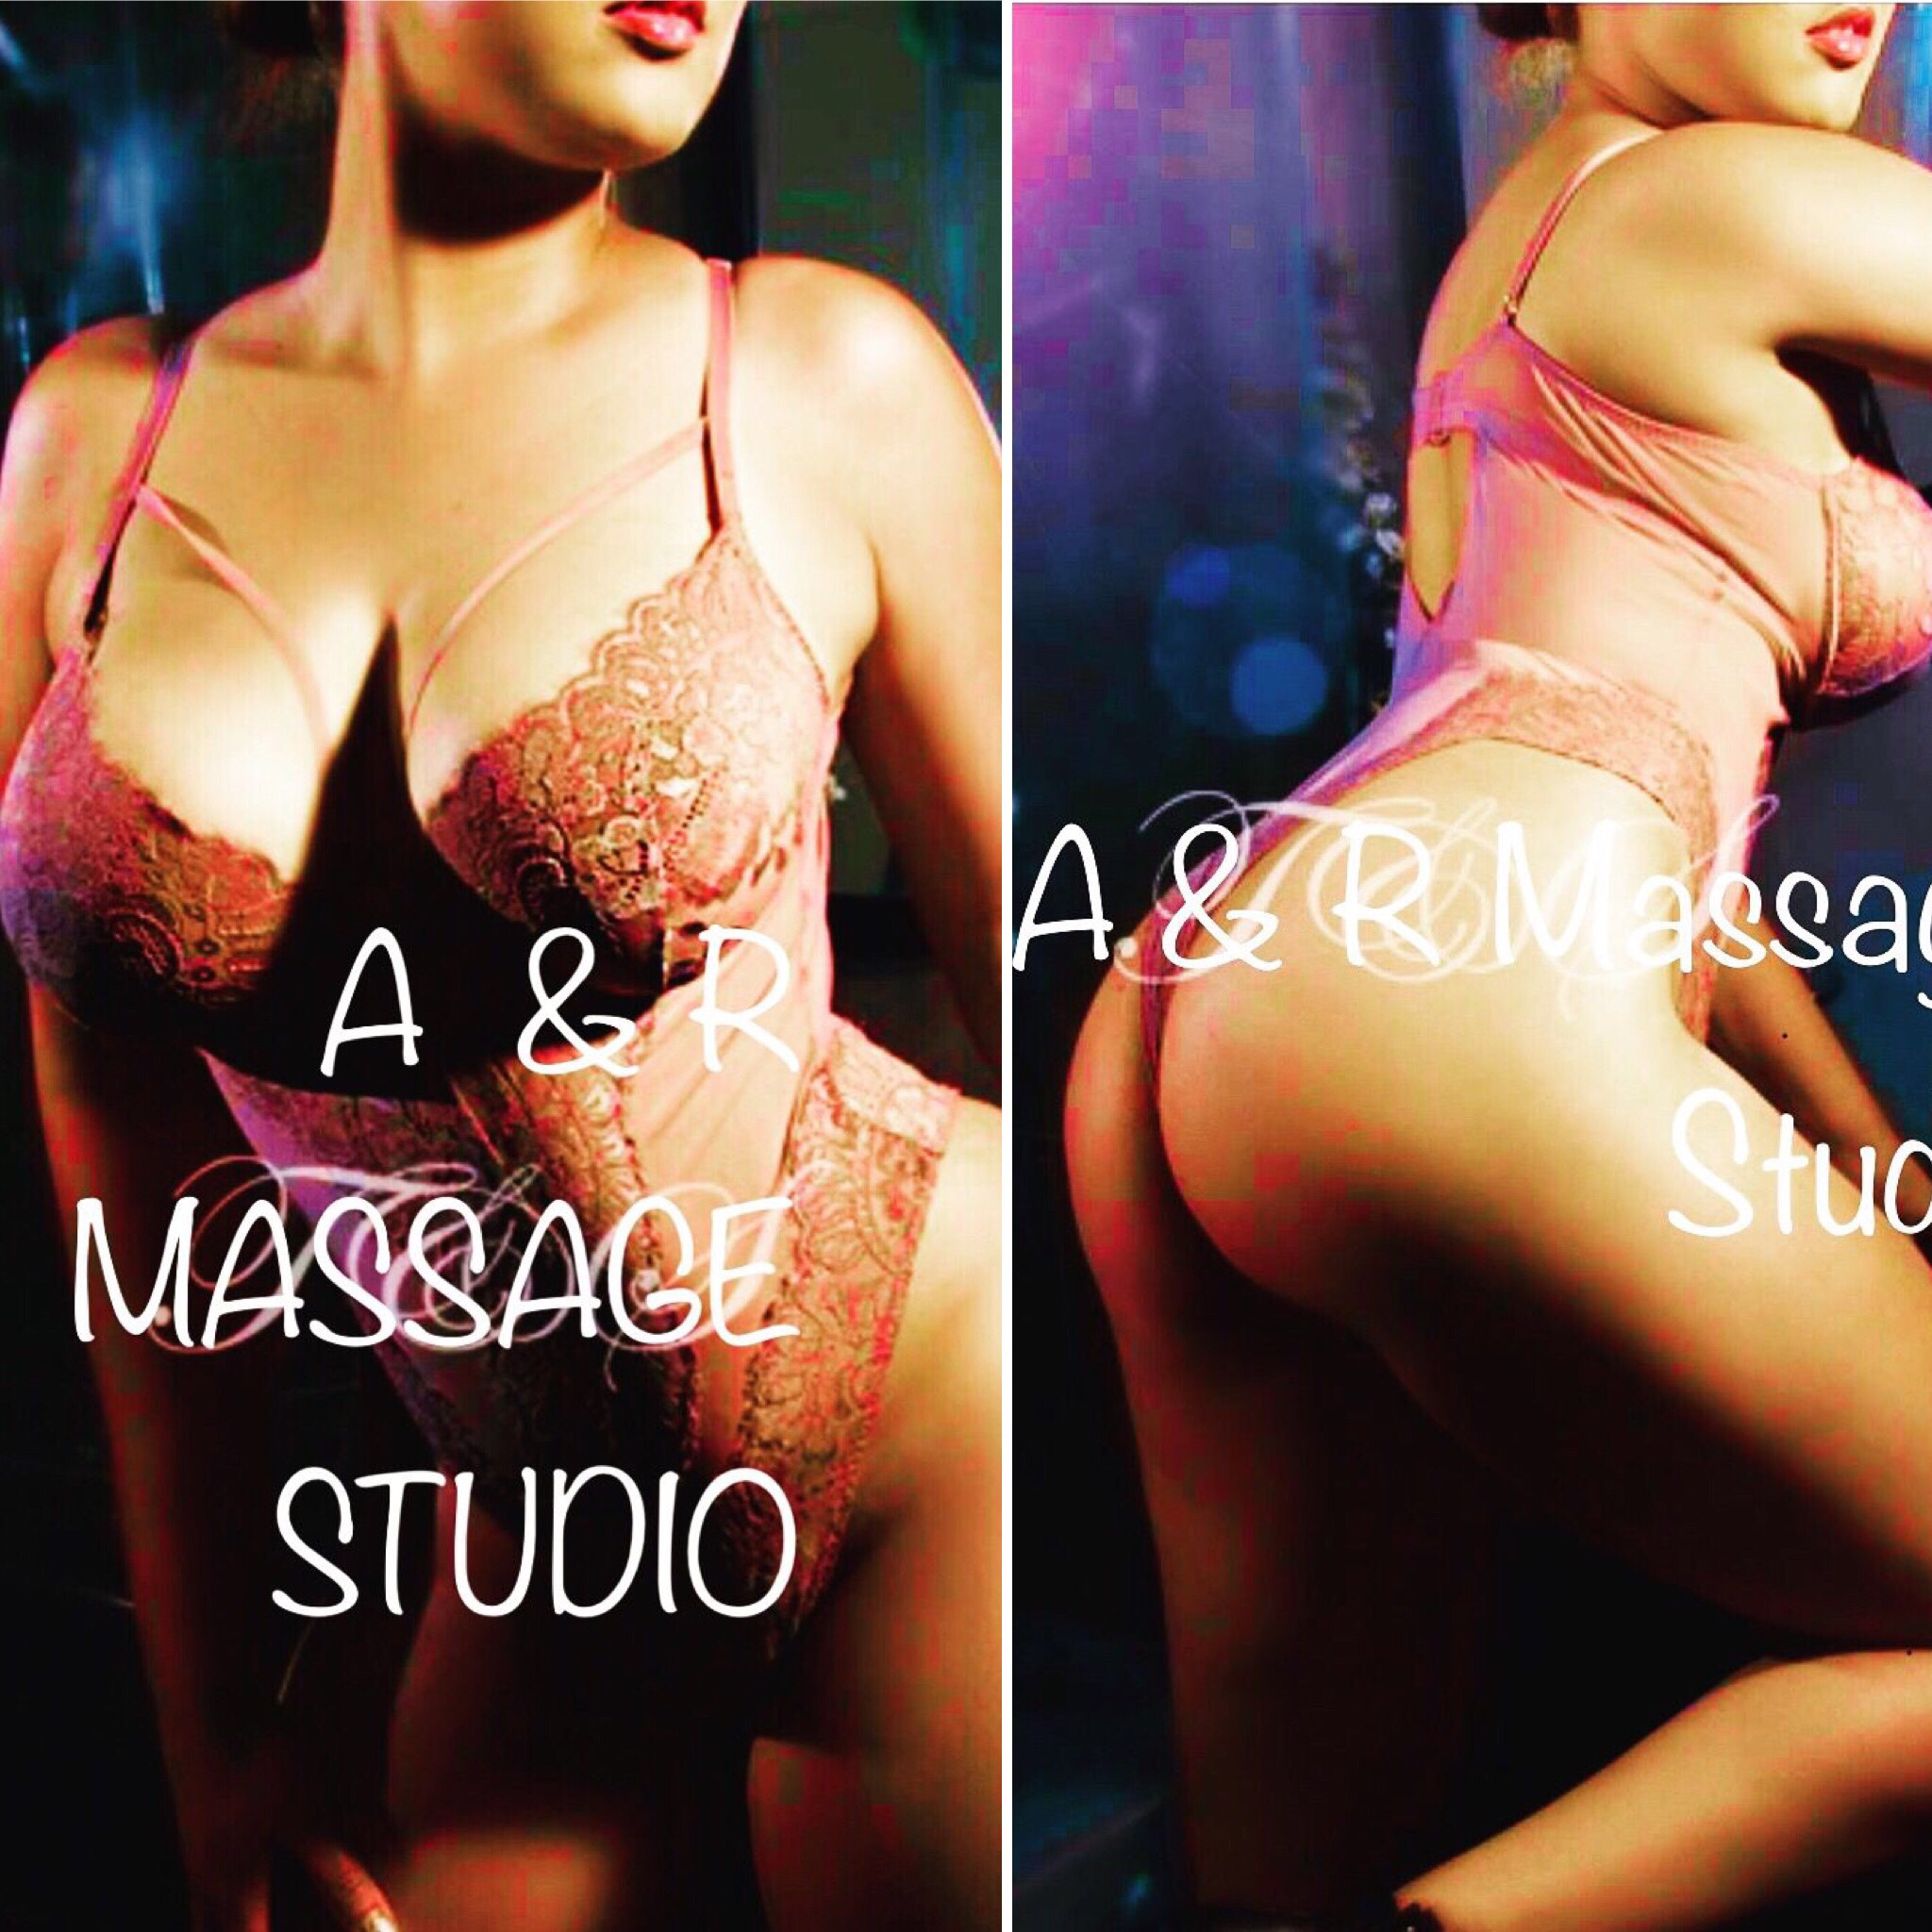 LOOKING FOR RELAXING- HAPPY-HOUR (MASSAGE +++MORE) 25-SEXY STUDENTS-WEEKLY 416 760 8555 WALK IN WELCOME .!! OPEN 7-DAYS WEEK 9am